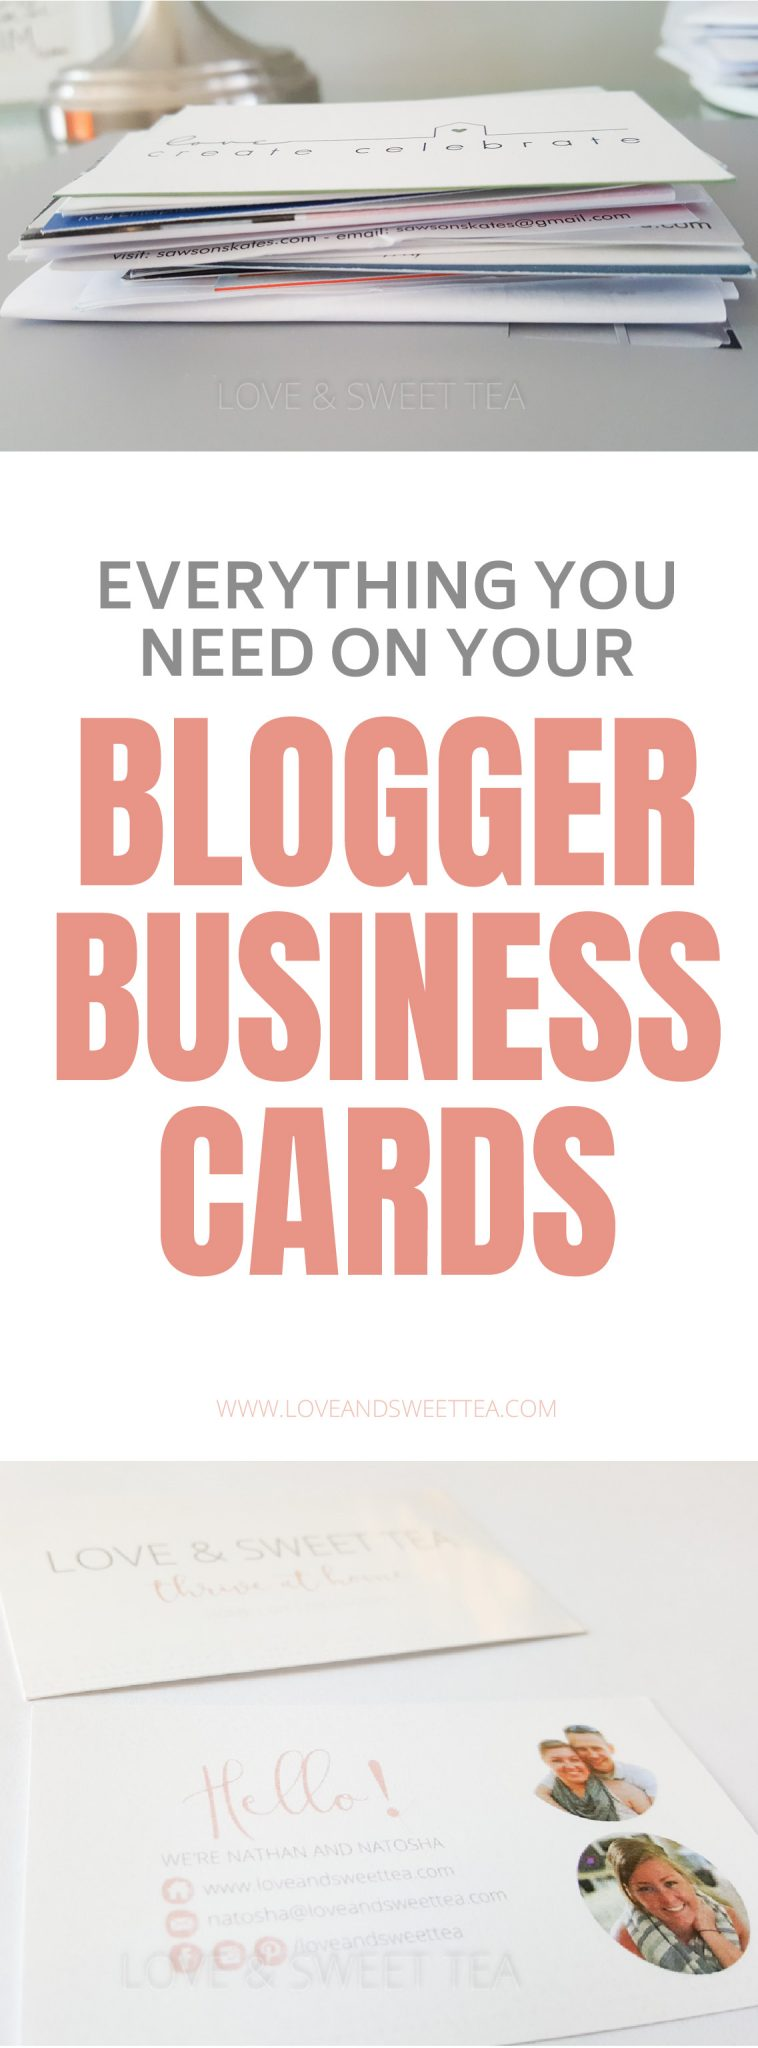 Blogger Business Cards | Business Cards For Bloggers